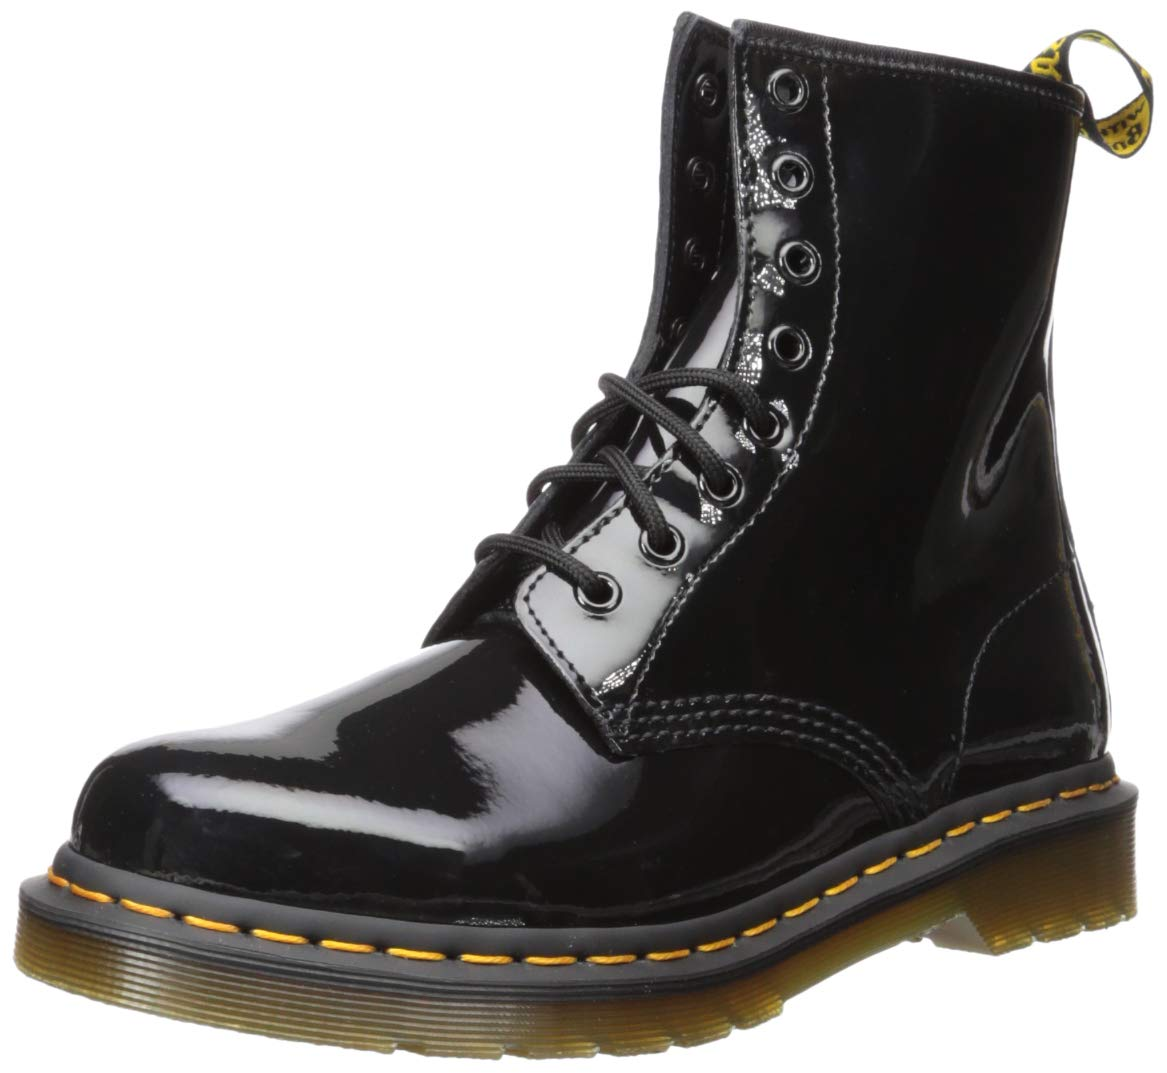 d1416e508cf Top Bottes et bottines femme selon les notes Amazon.fr